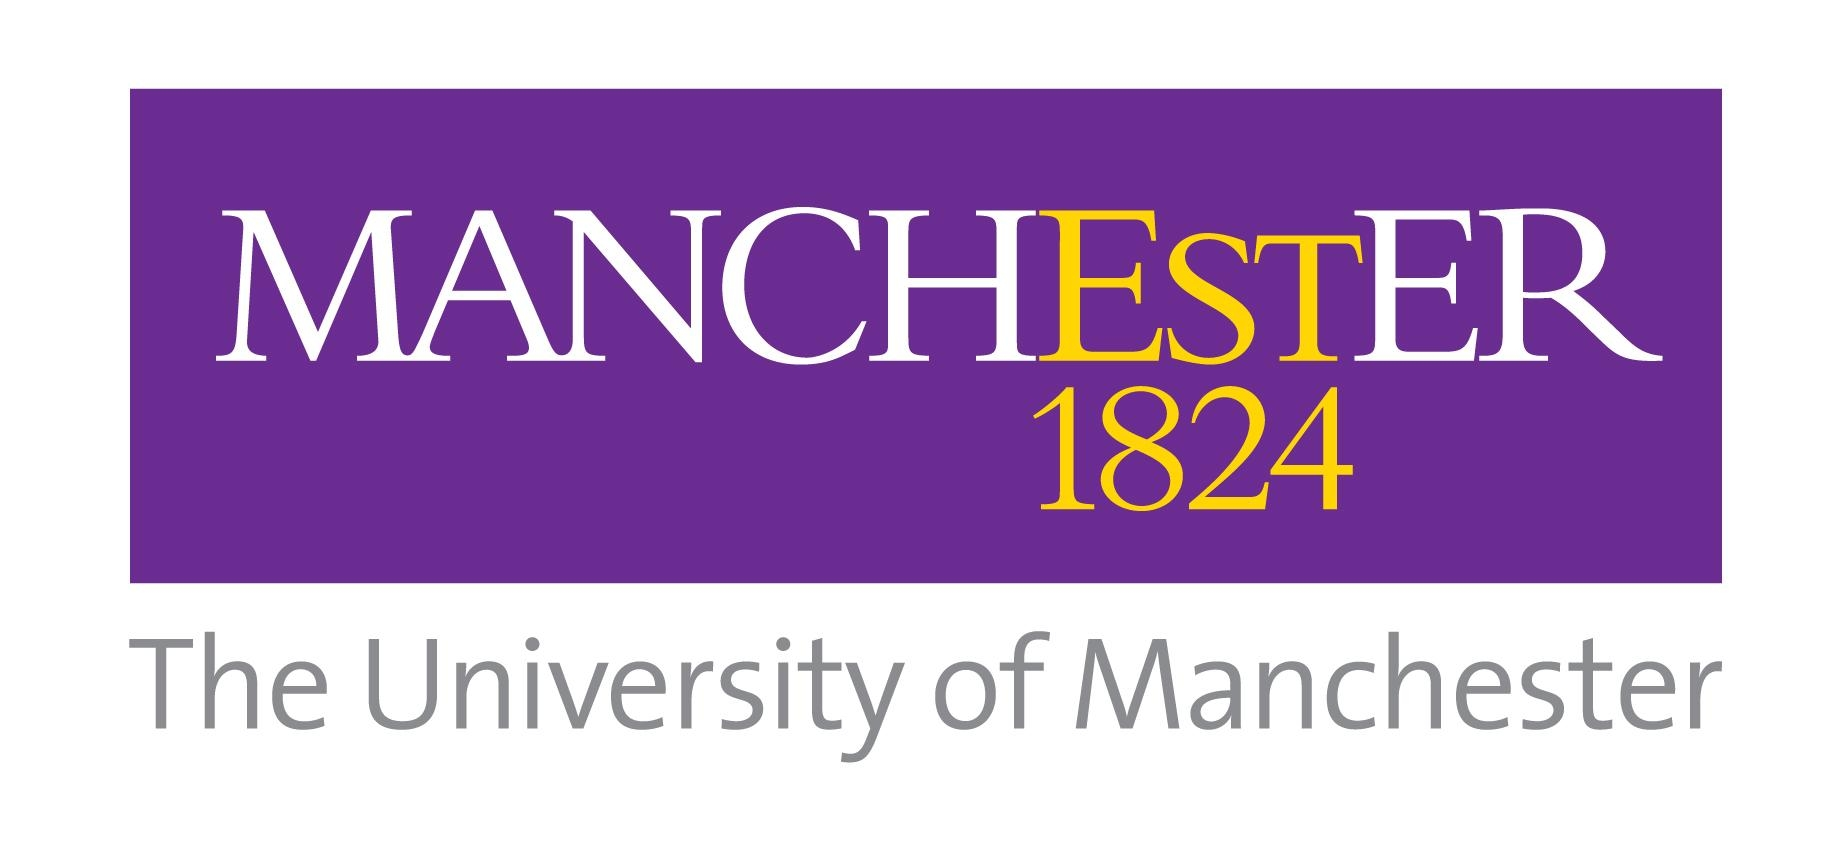 The University of Manchester Institute of Science and Technology